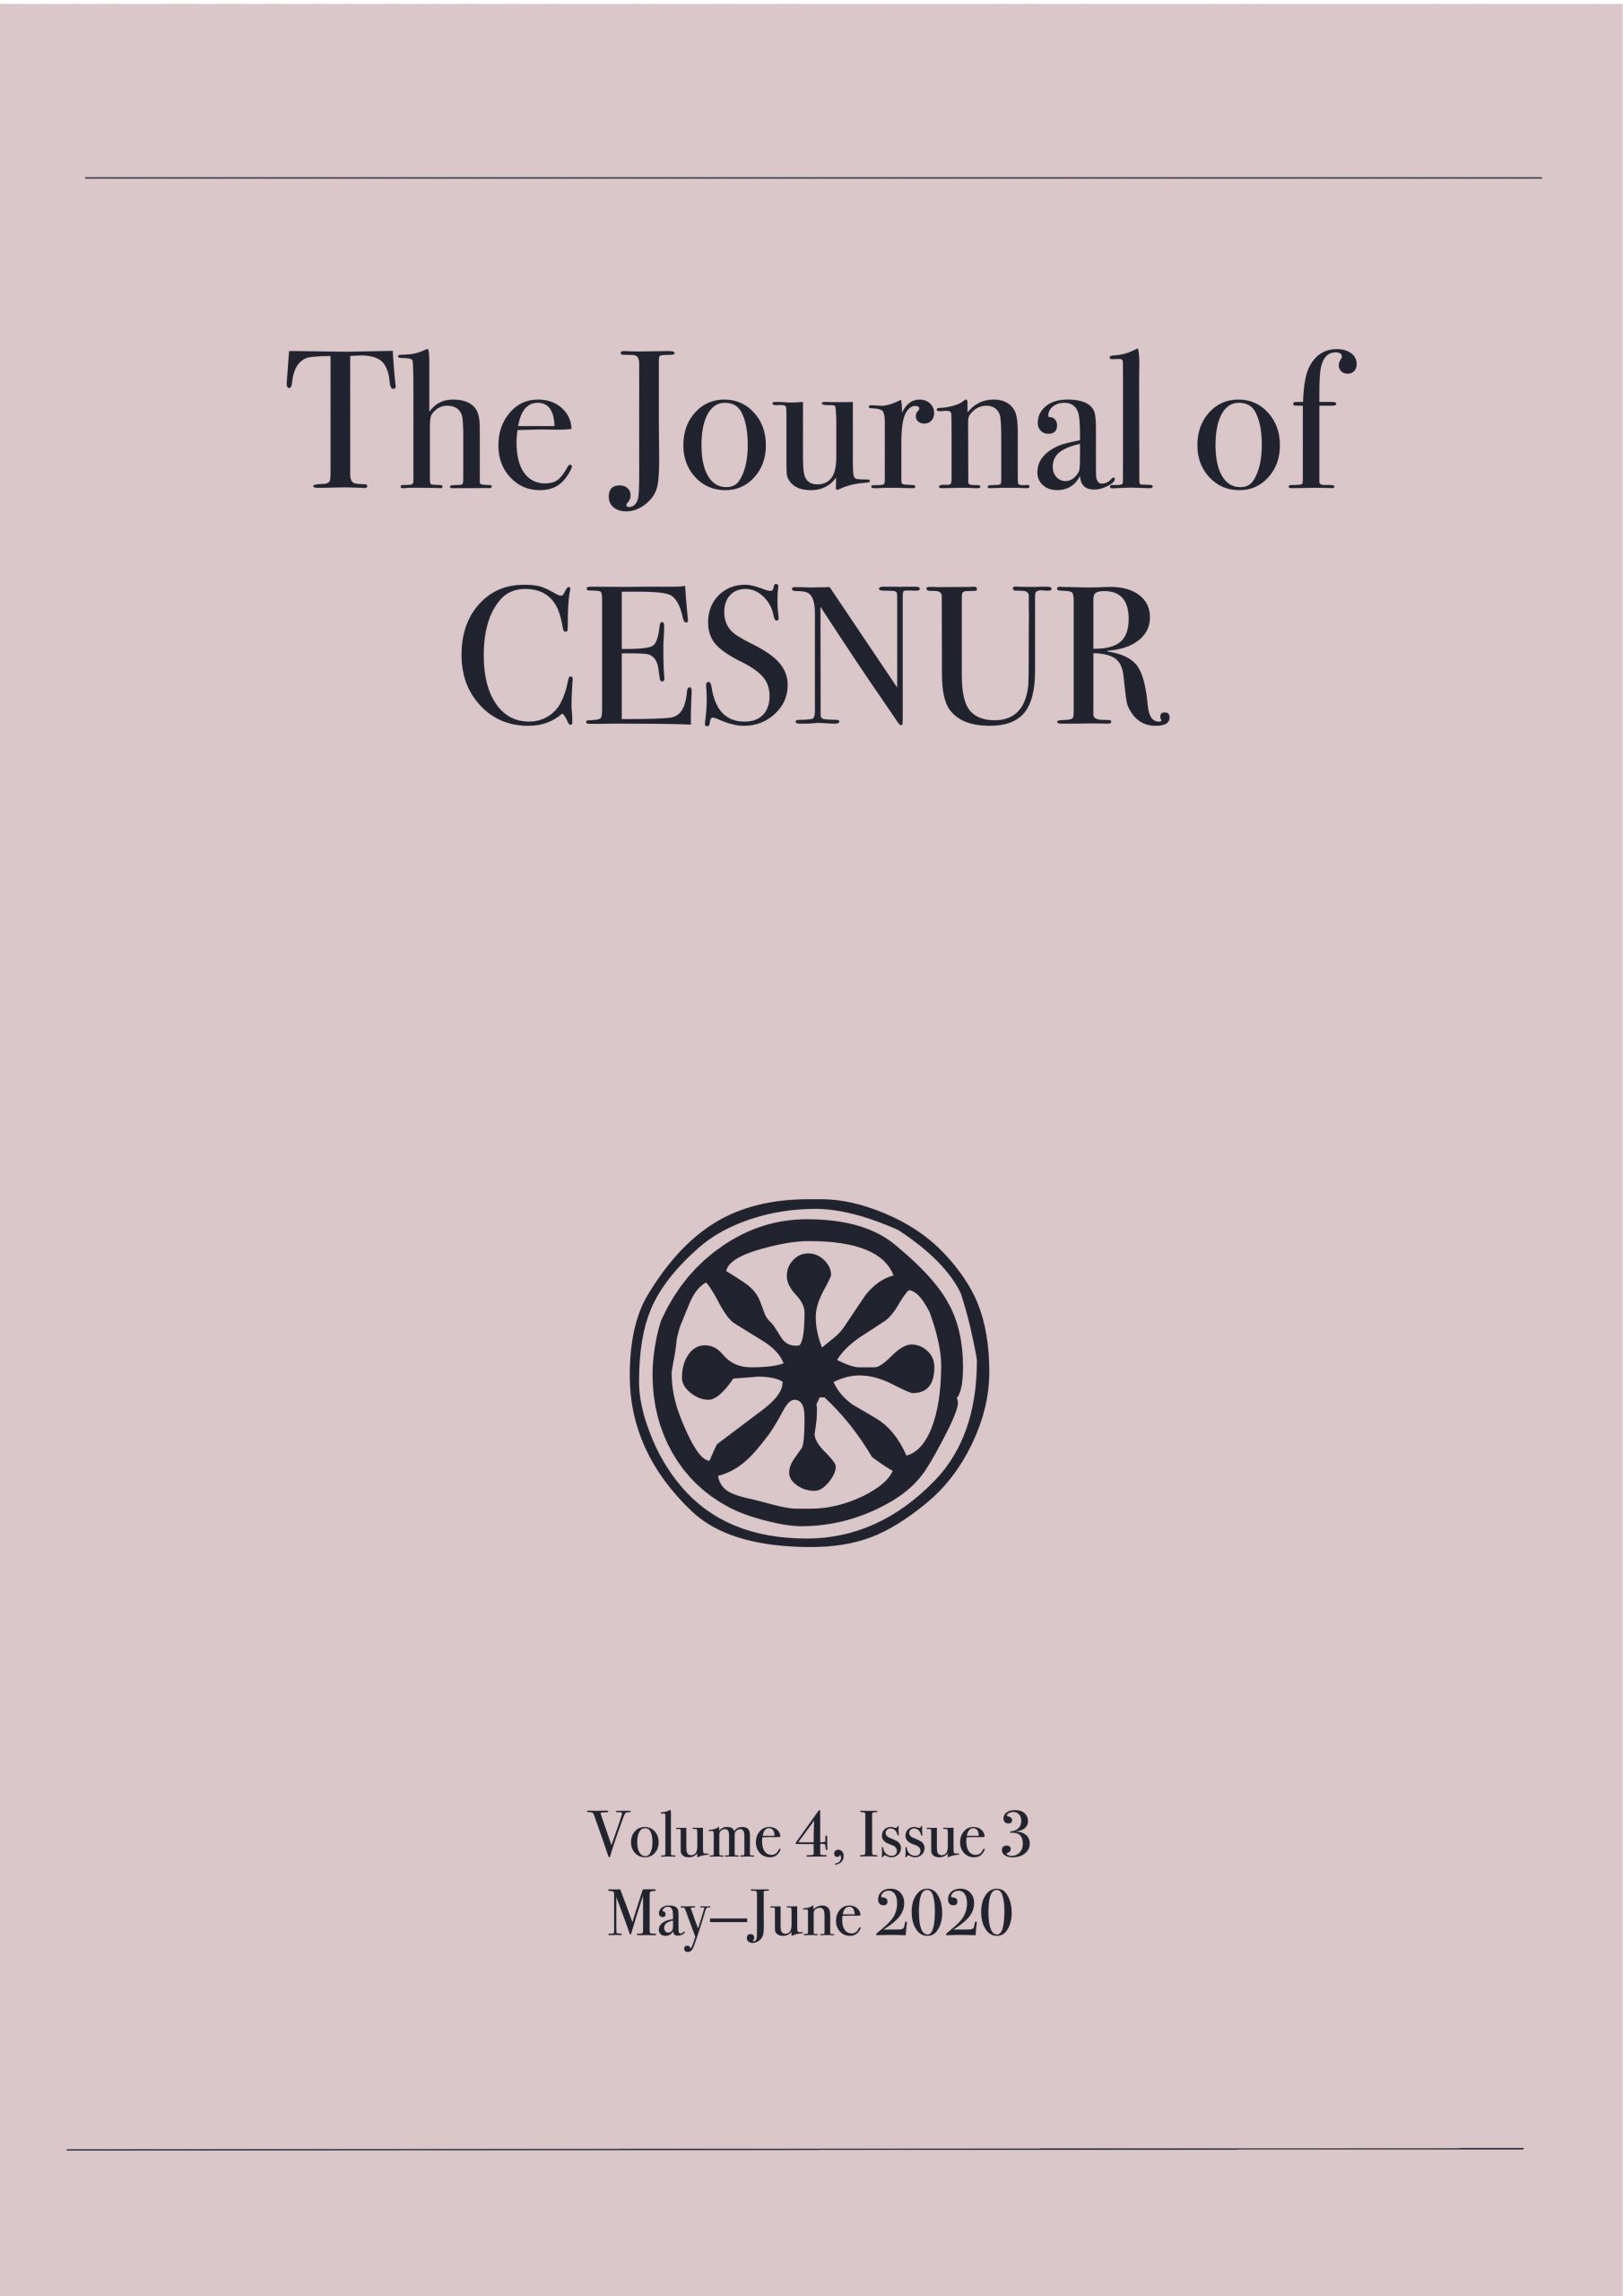 The journal of Cesnur Volume 4, Issue 3_cover